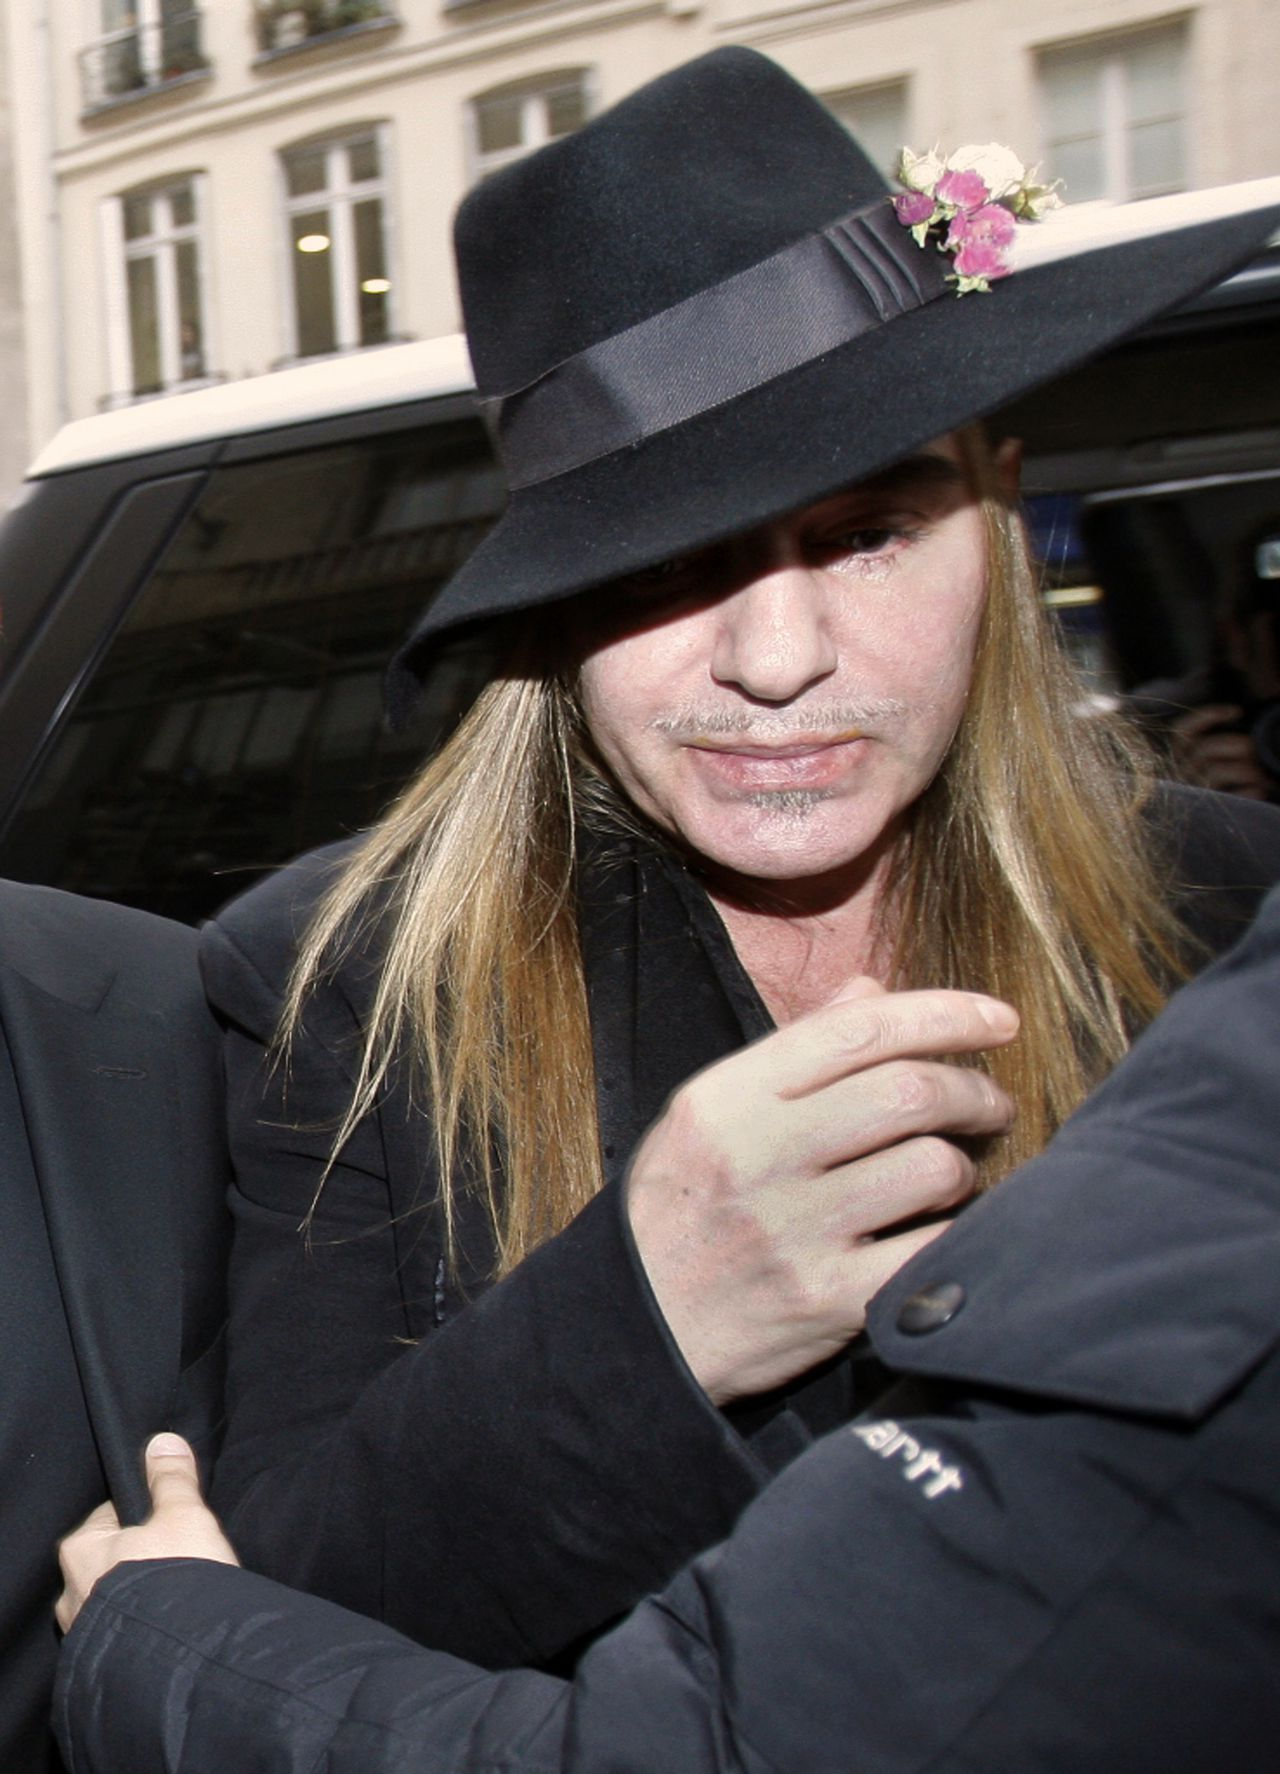 FILE - In this Feb. 28, 2011 file photo, fashion designer John Galliano arrives at a police station in Paris. A Paris court on Thursday, Sept. 8, 2011 convicted former Christian Dior designer John Galliano for making anti-Semitic insults and gave him a suspended sentence of euro 6,000 ($8,400) in fines. (AP Photo/Michel Euler, File)